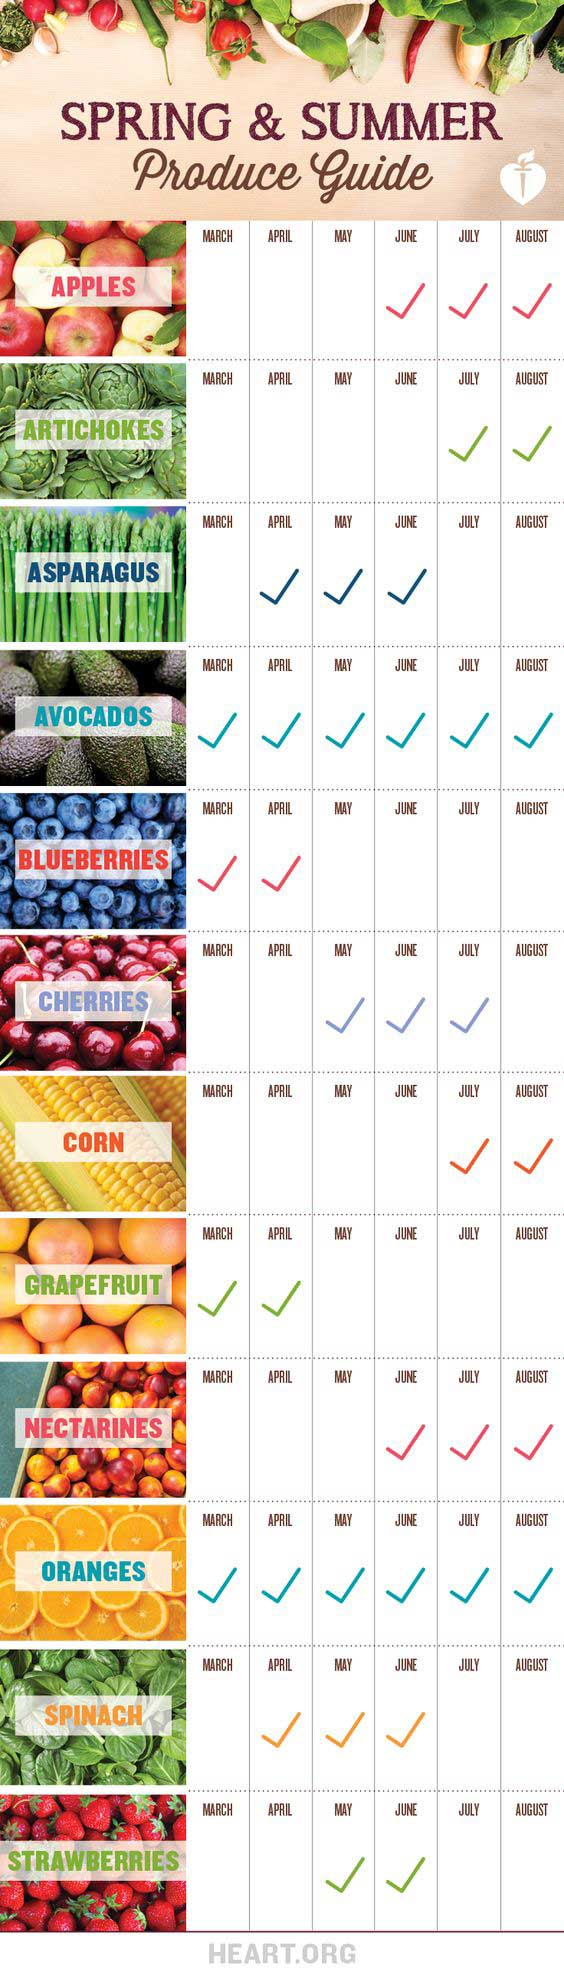 Spring & Summer Produce Guide